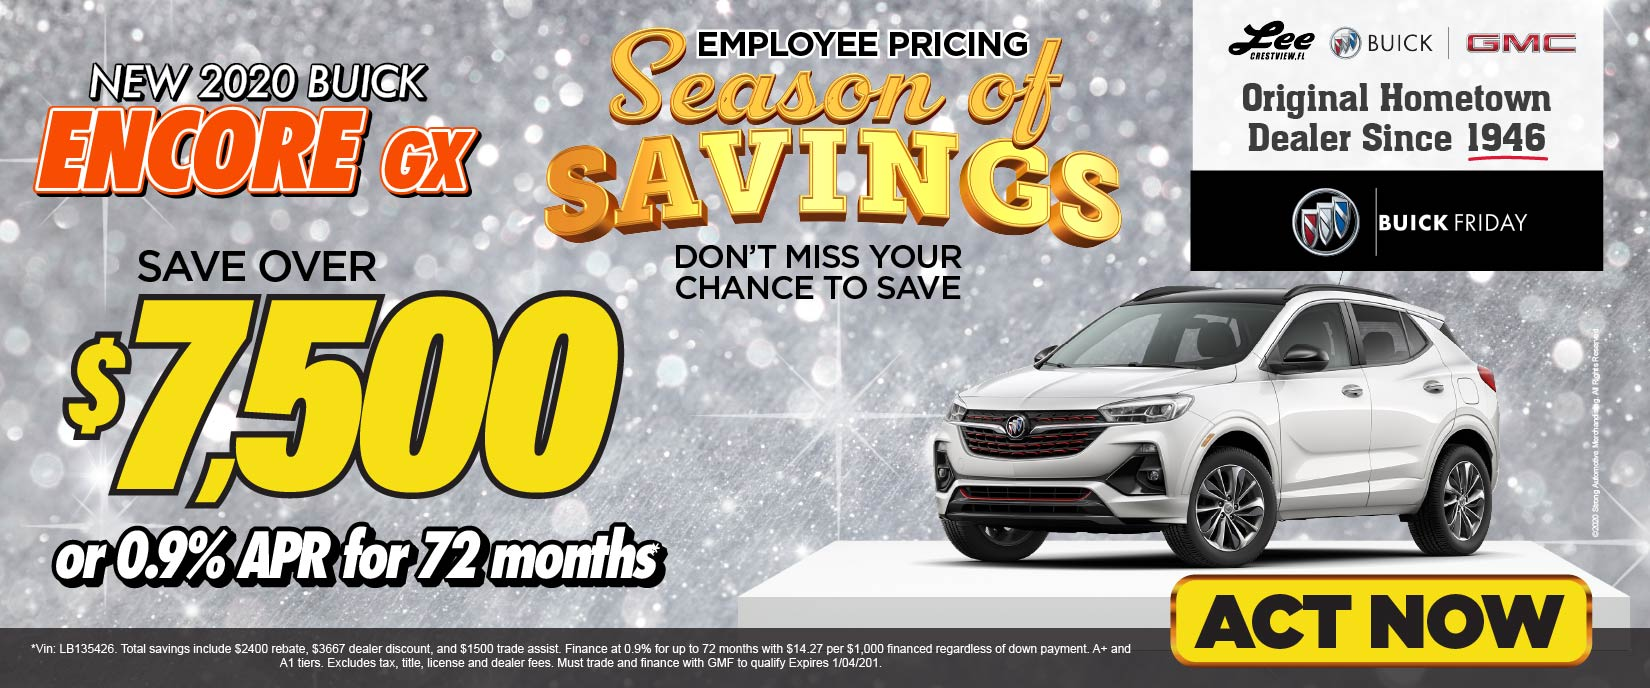 New 2020 Buick Encore - Save over $7,500